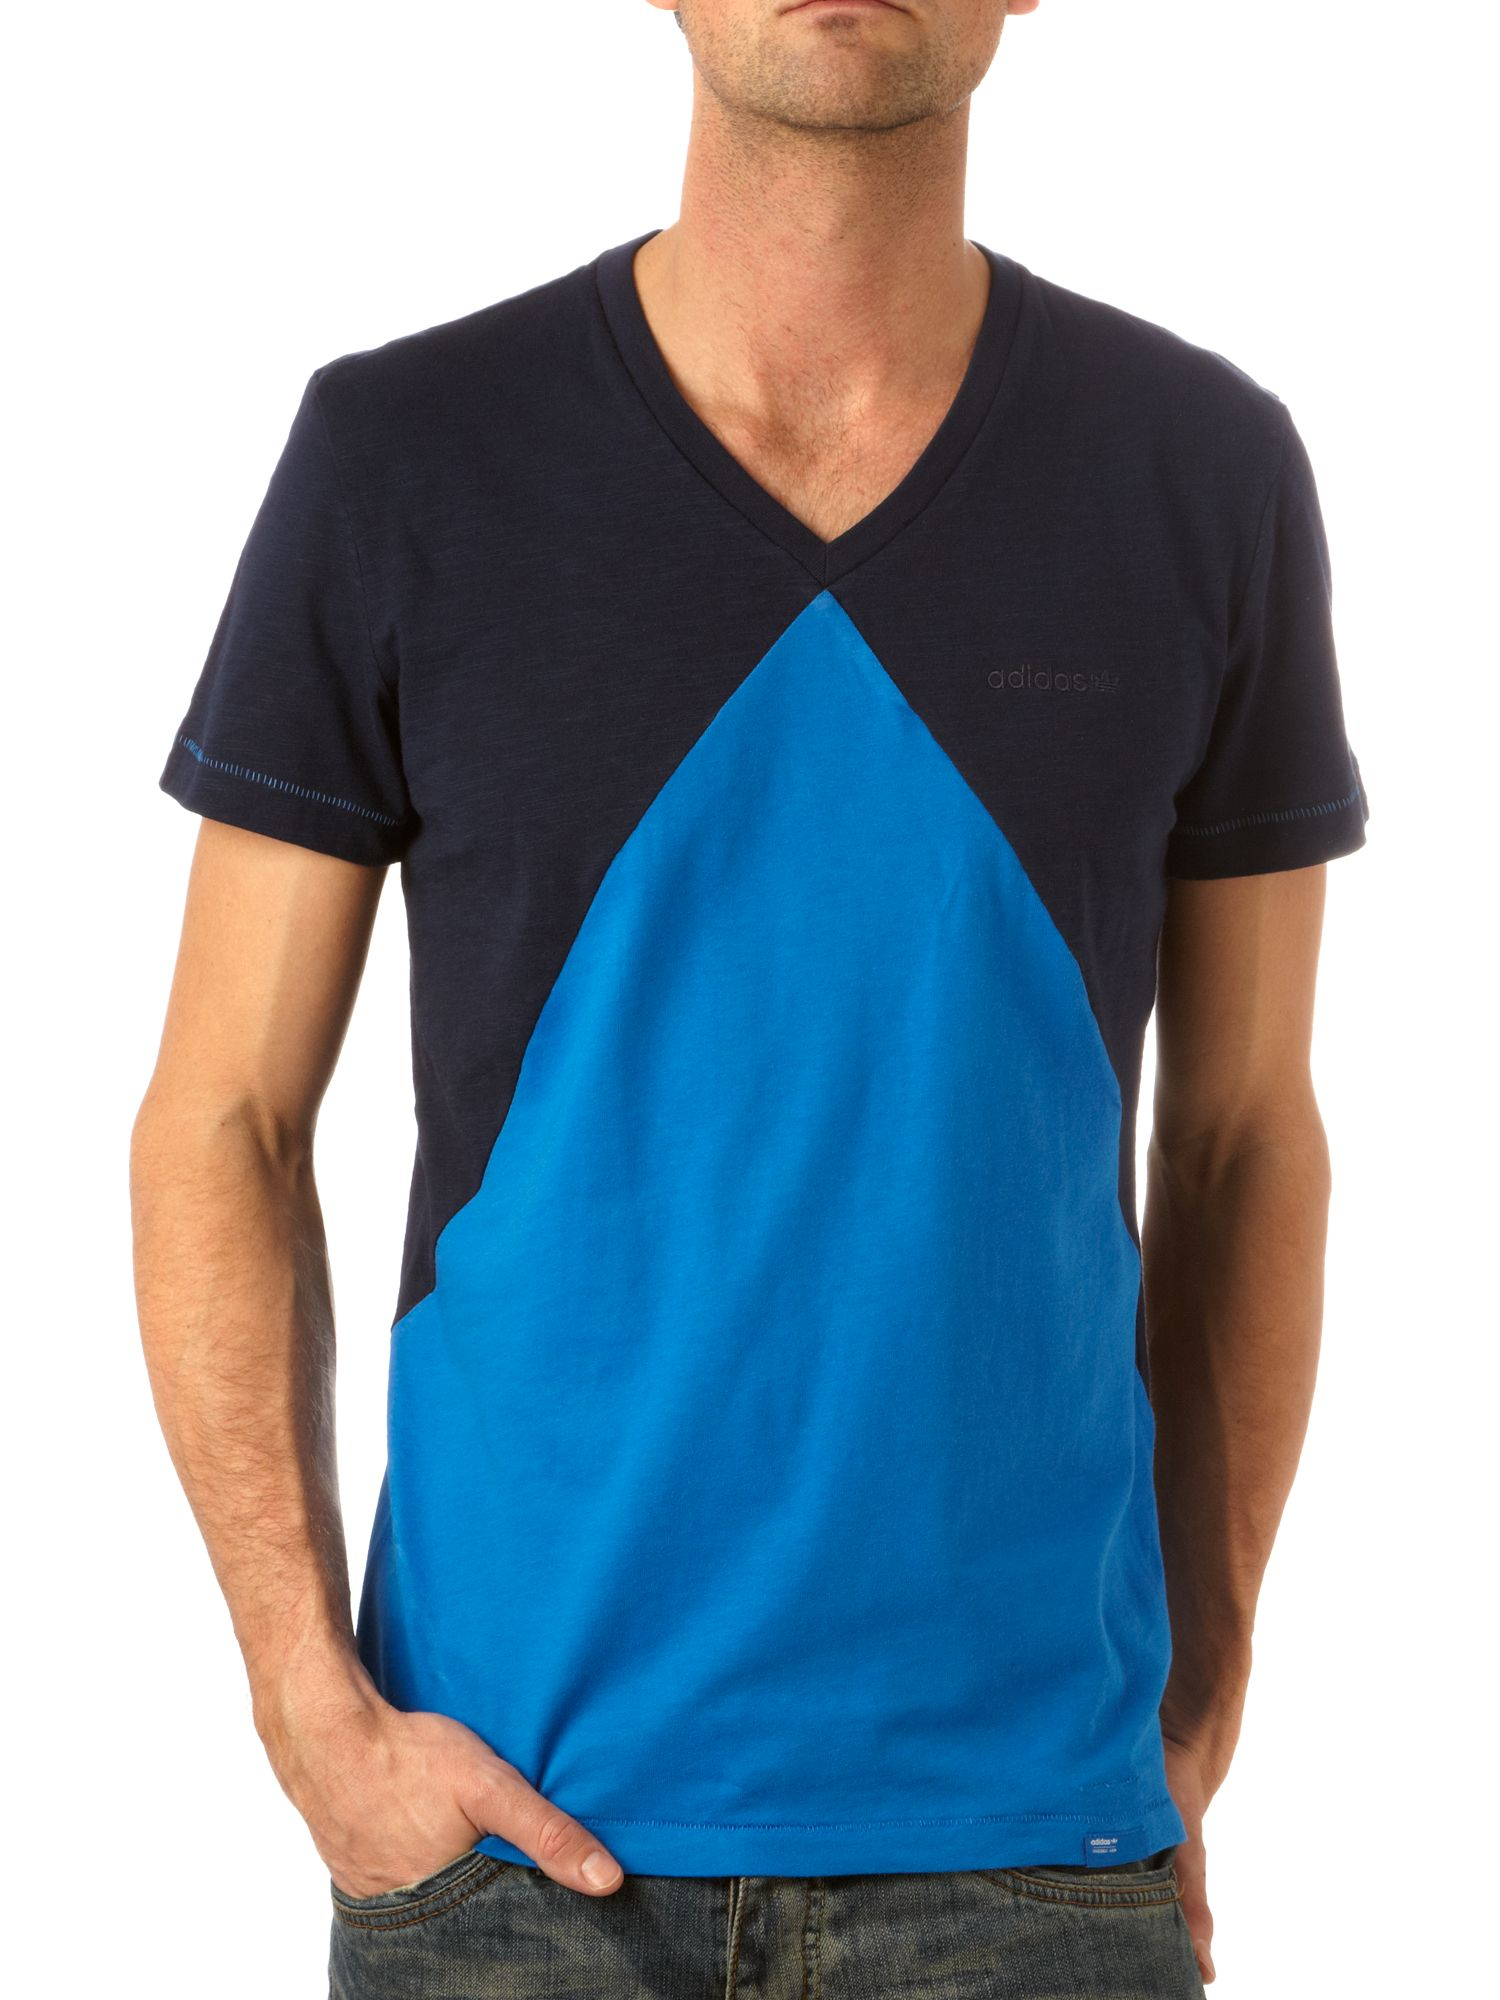 Adidas Triangle cut out T-shirt product image